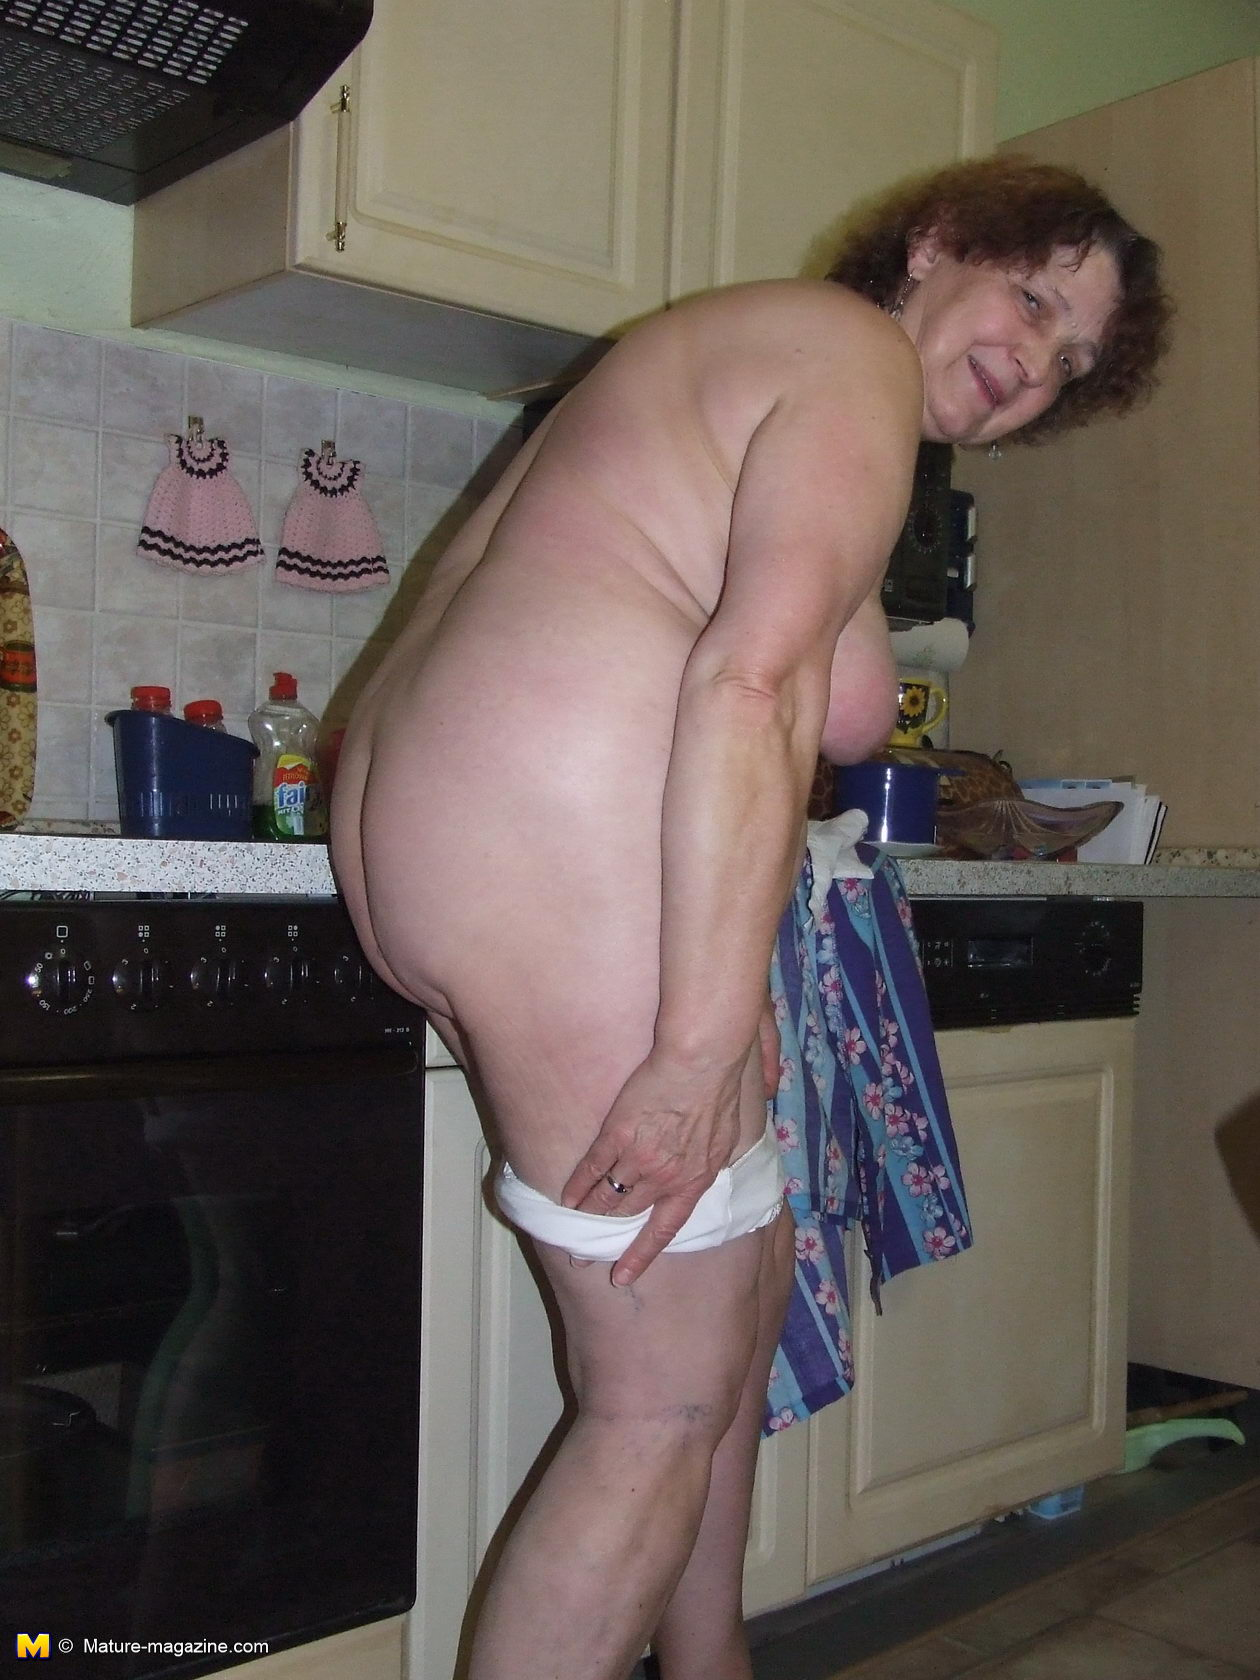 fattest woman in the world naked